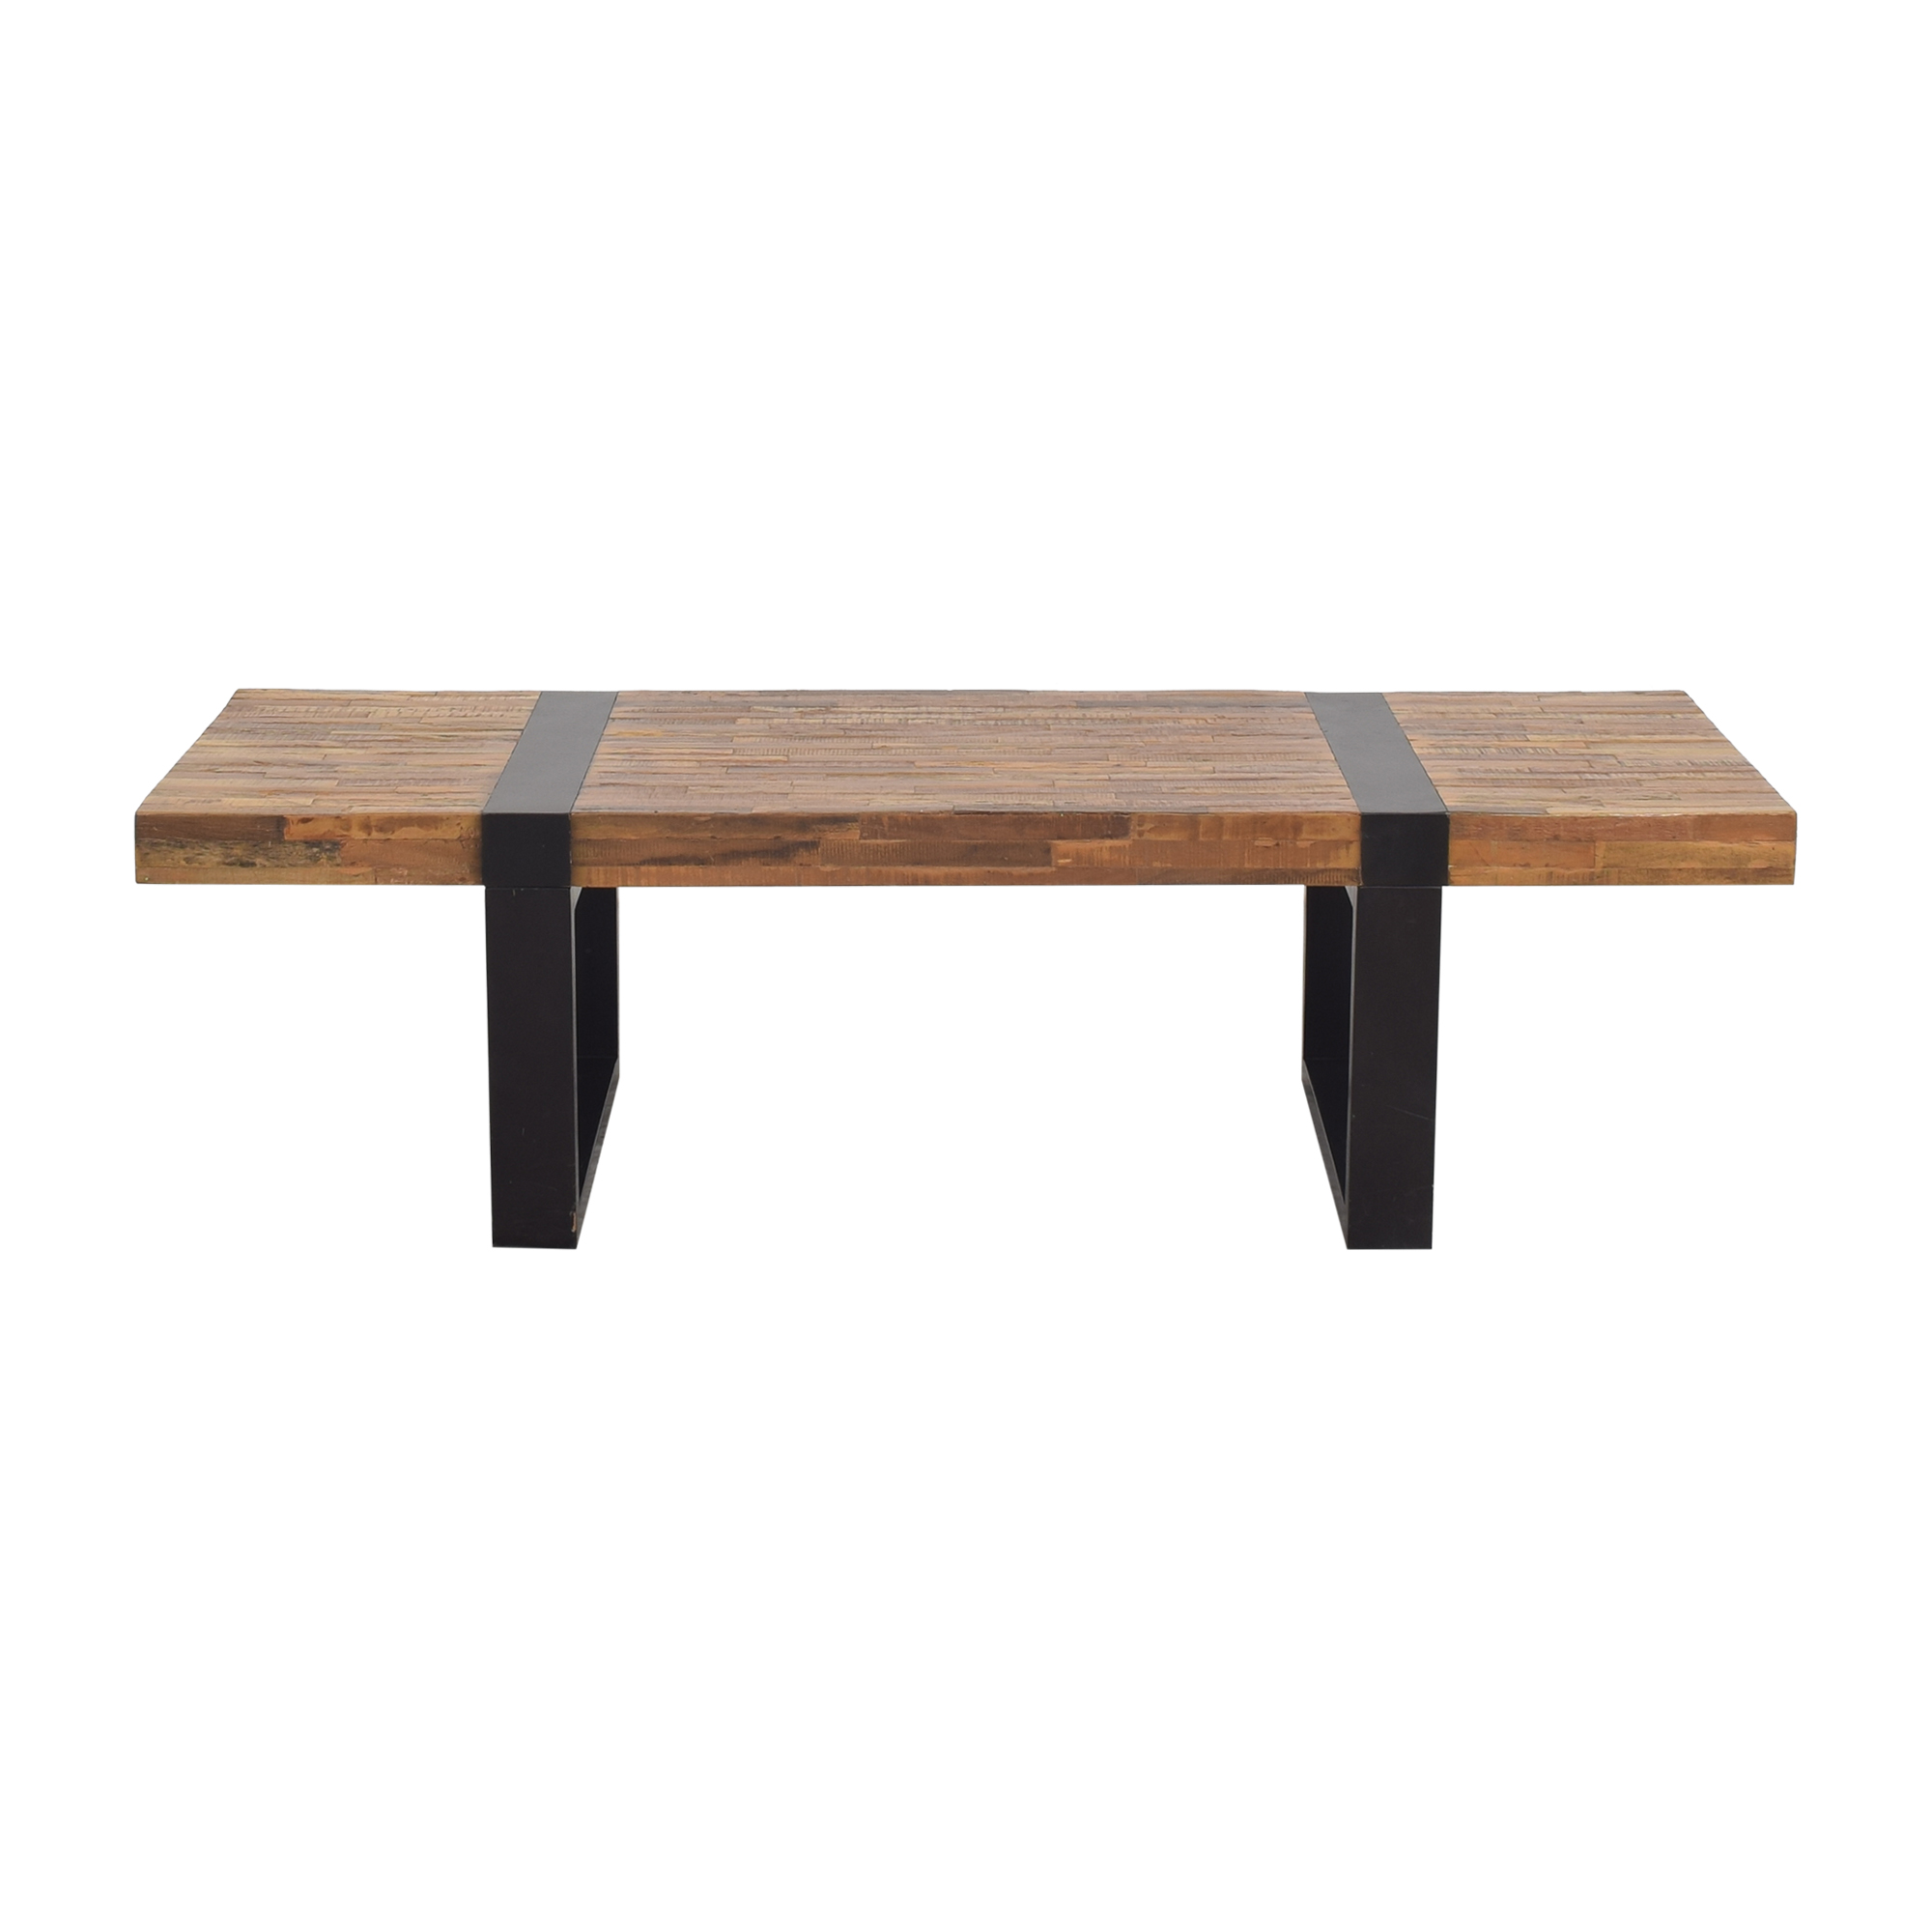 Crate & Barrel Crate & Barrel Seguro Coffee Table ma